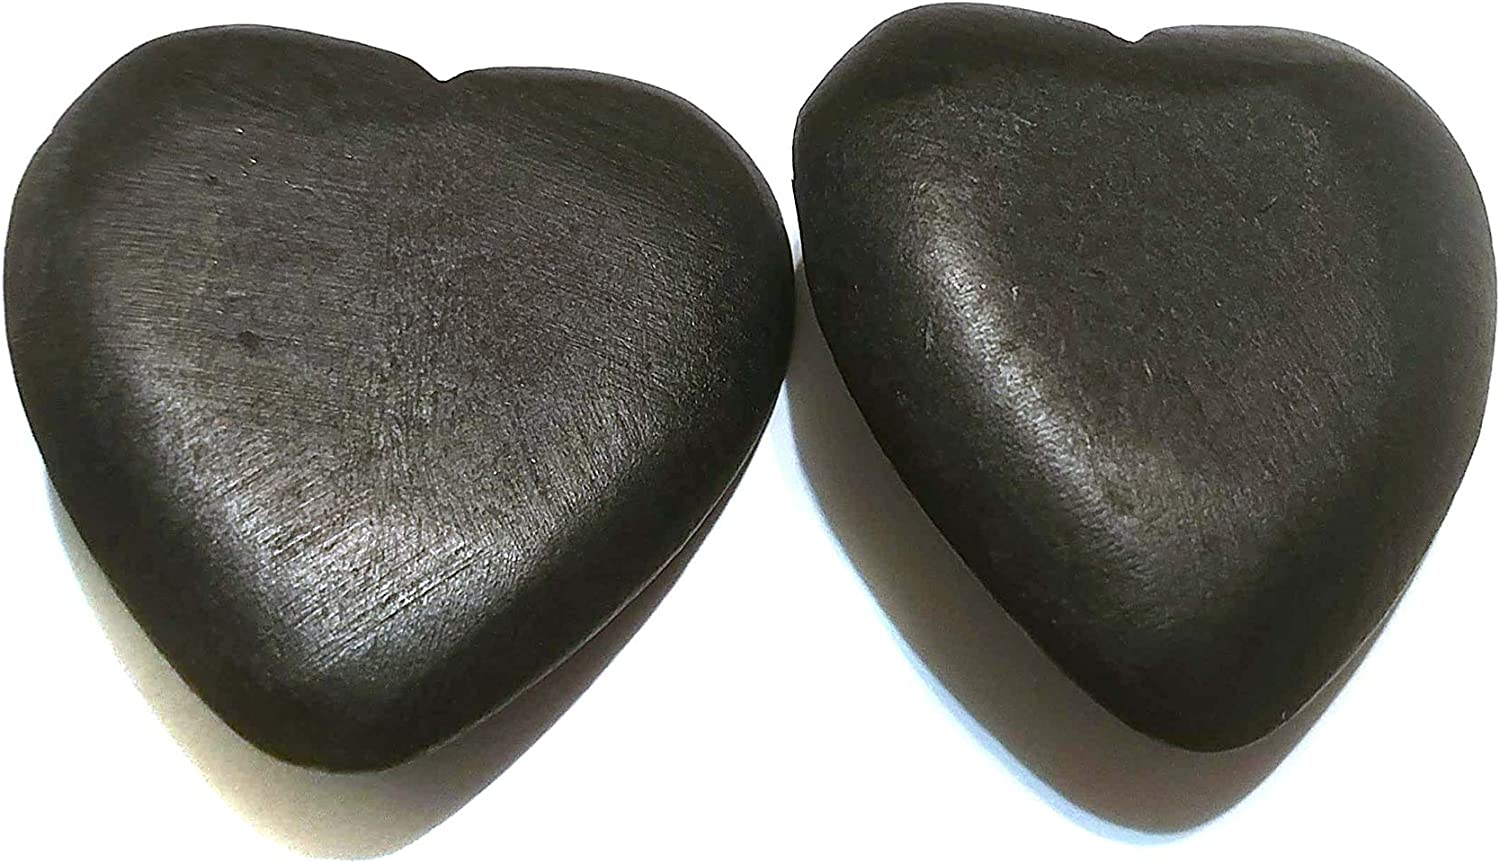 Clip-on Earrings Large Heart Wood Earrings Brown and Black 2 inch Non Pierced